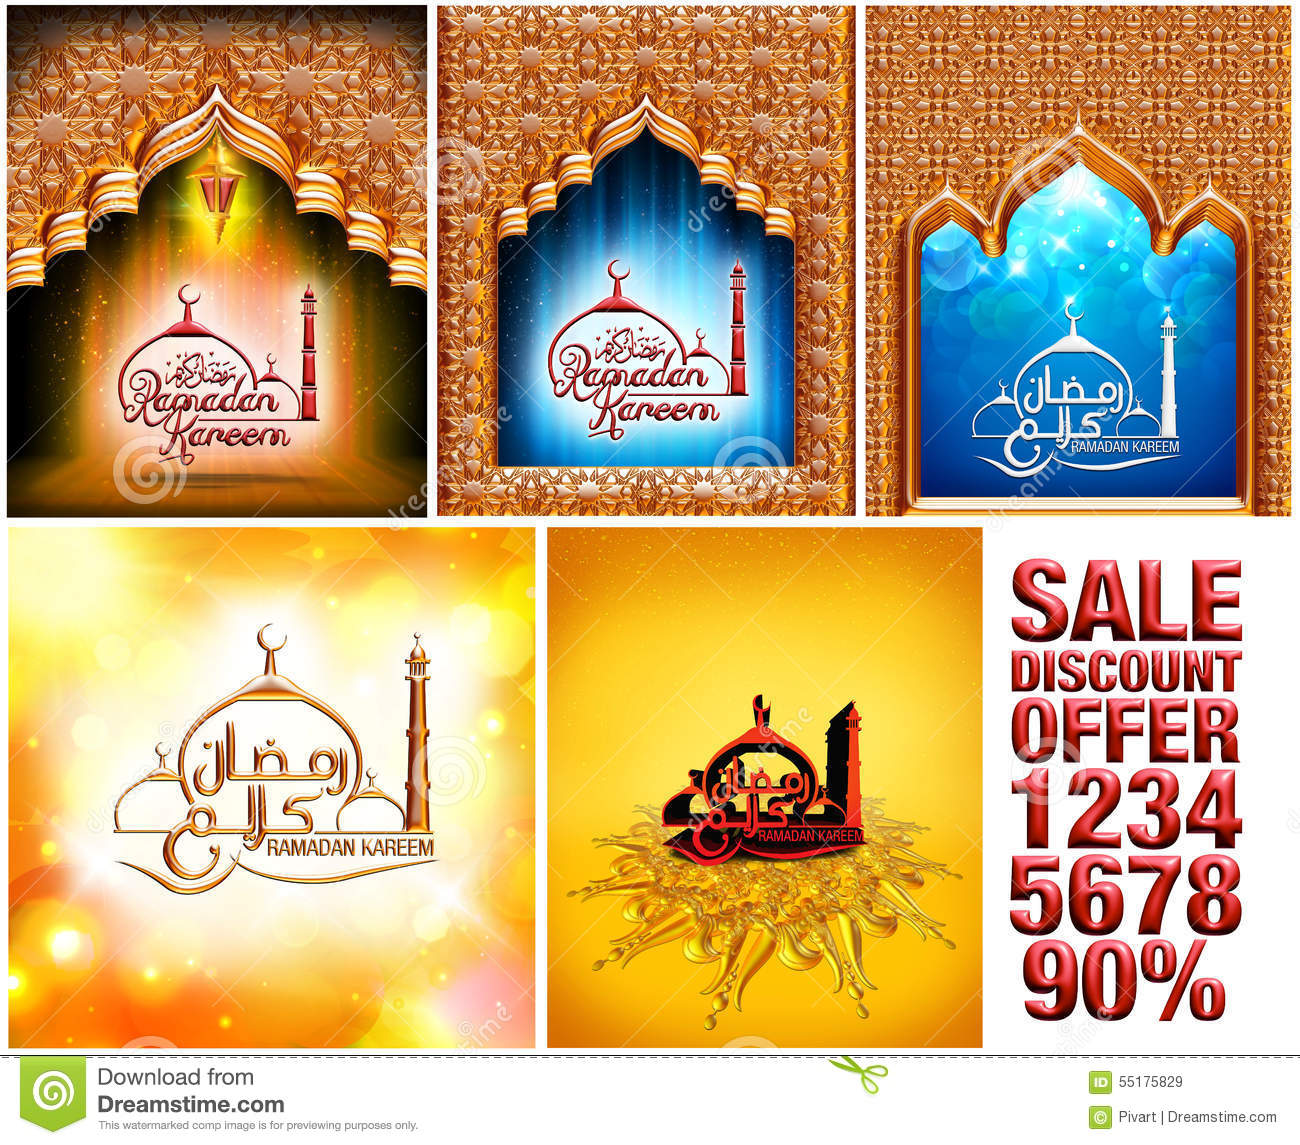 Greeting Card Design Of Mosque And Stylish Text Ramadan Kareem In 3d